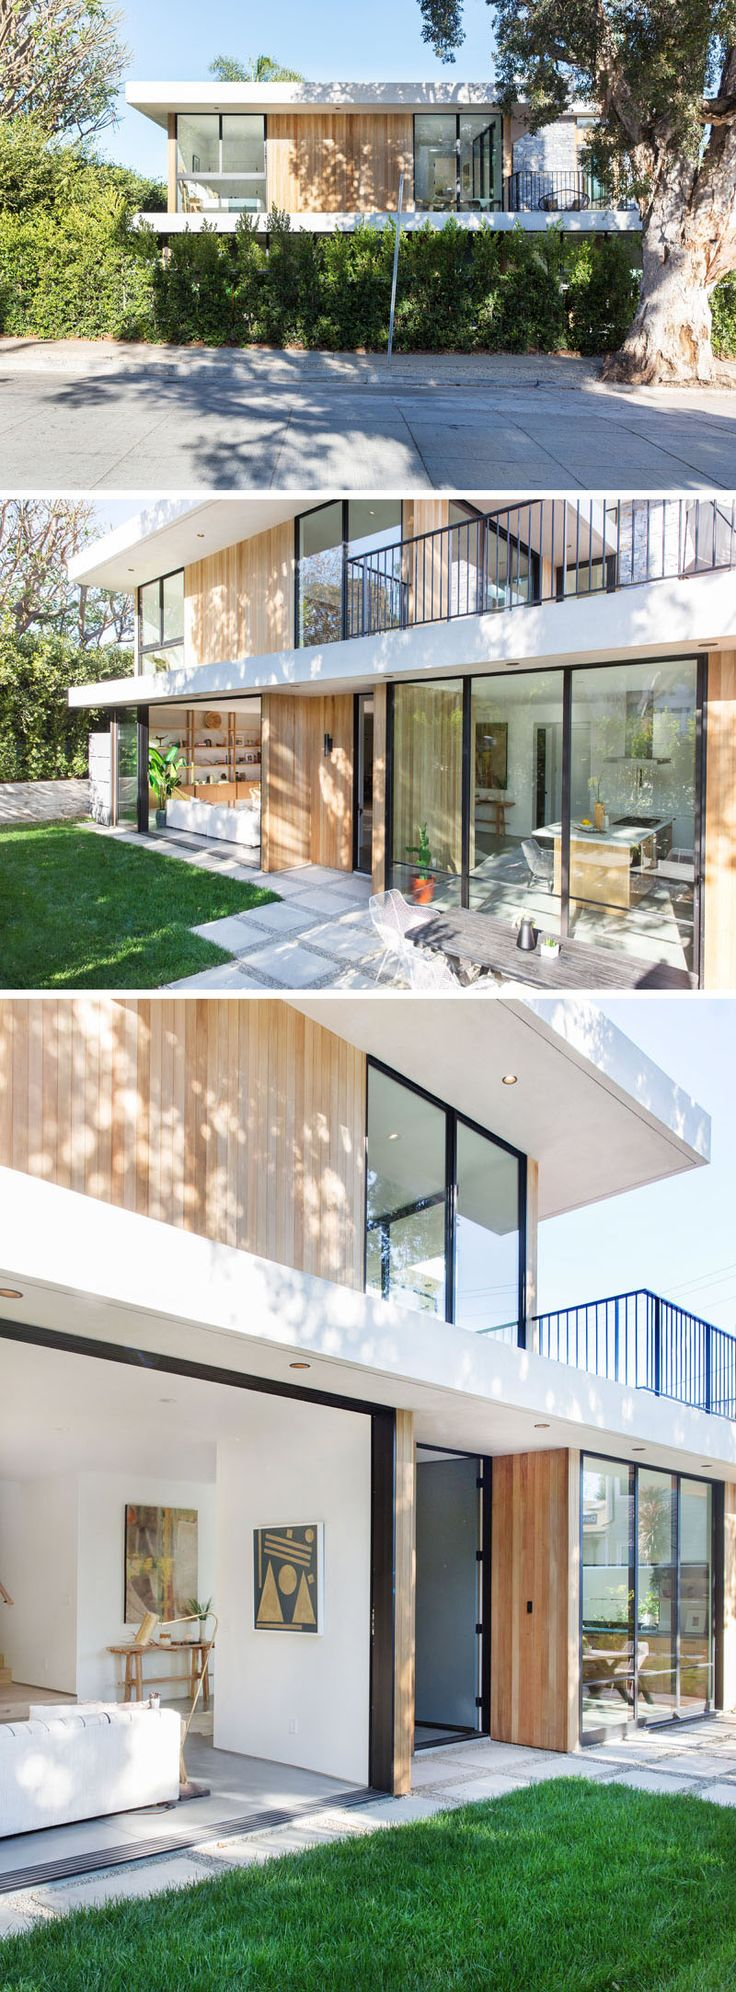 The exterior of this contemporary home is clad in bleached cedar and stucco, with a second story deck that breaks up the massing and relates to the corner at the second level. #ContemporaryHouse #HouseDesign #Architecture